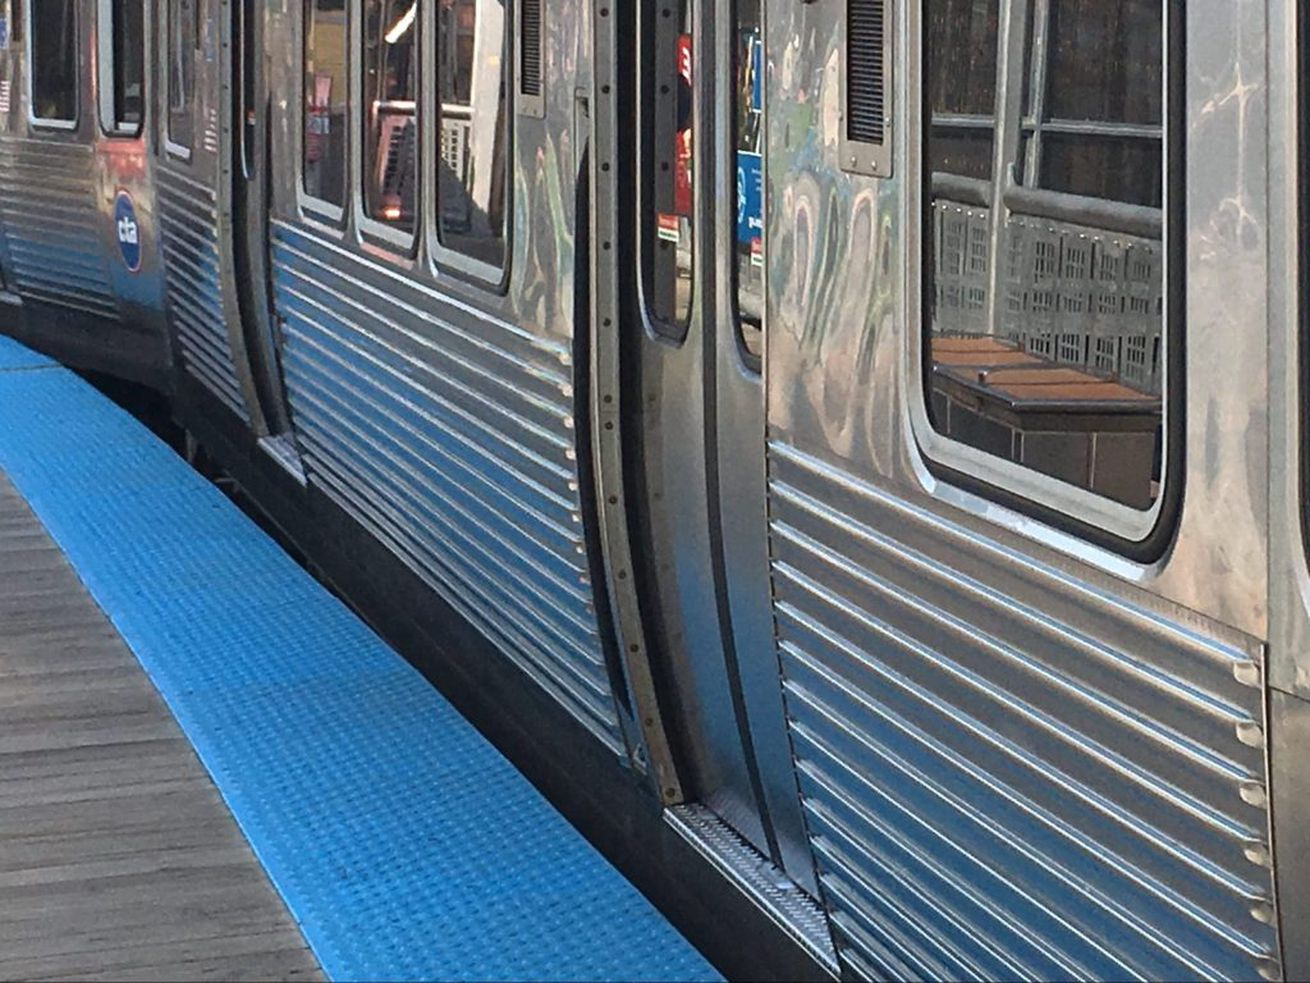 A woman was fatally struck by a train March 13, 2021, at the Adams/Wabash station.